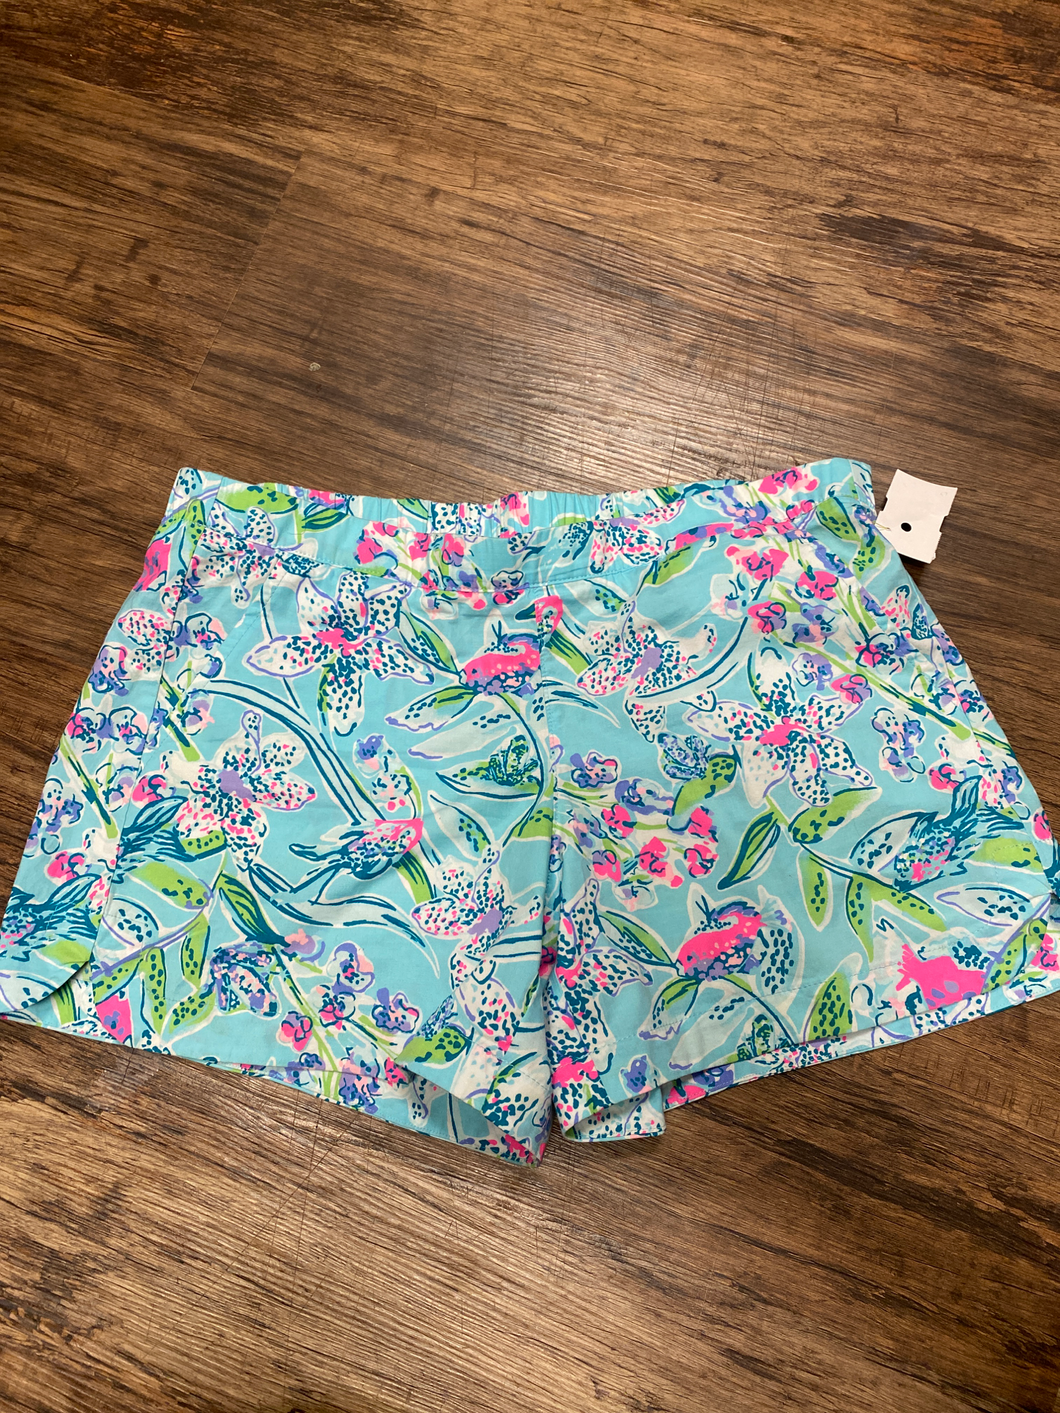 Lilly Pulitzer Shorts Size 8 (29)